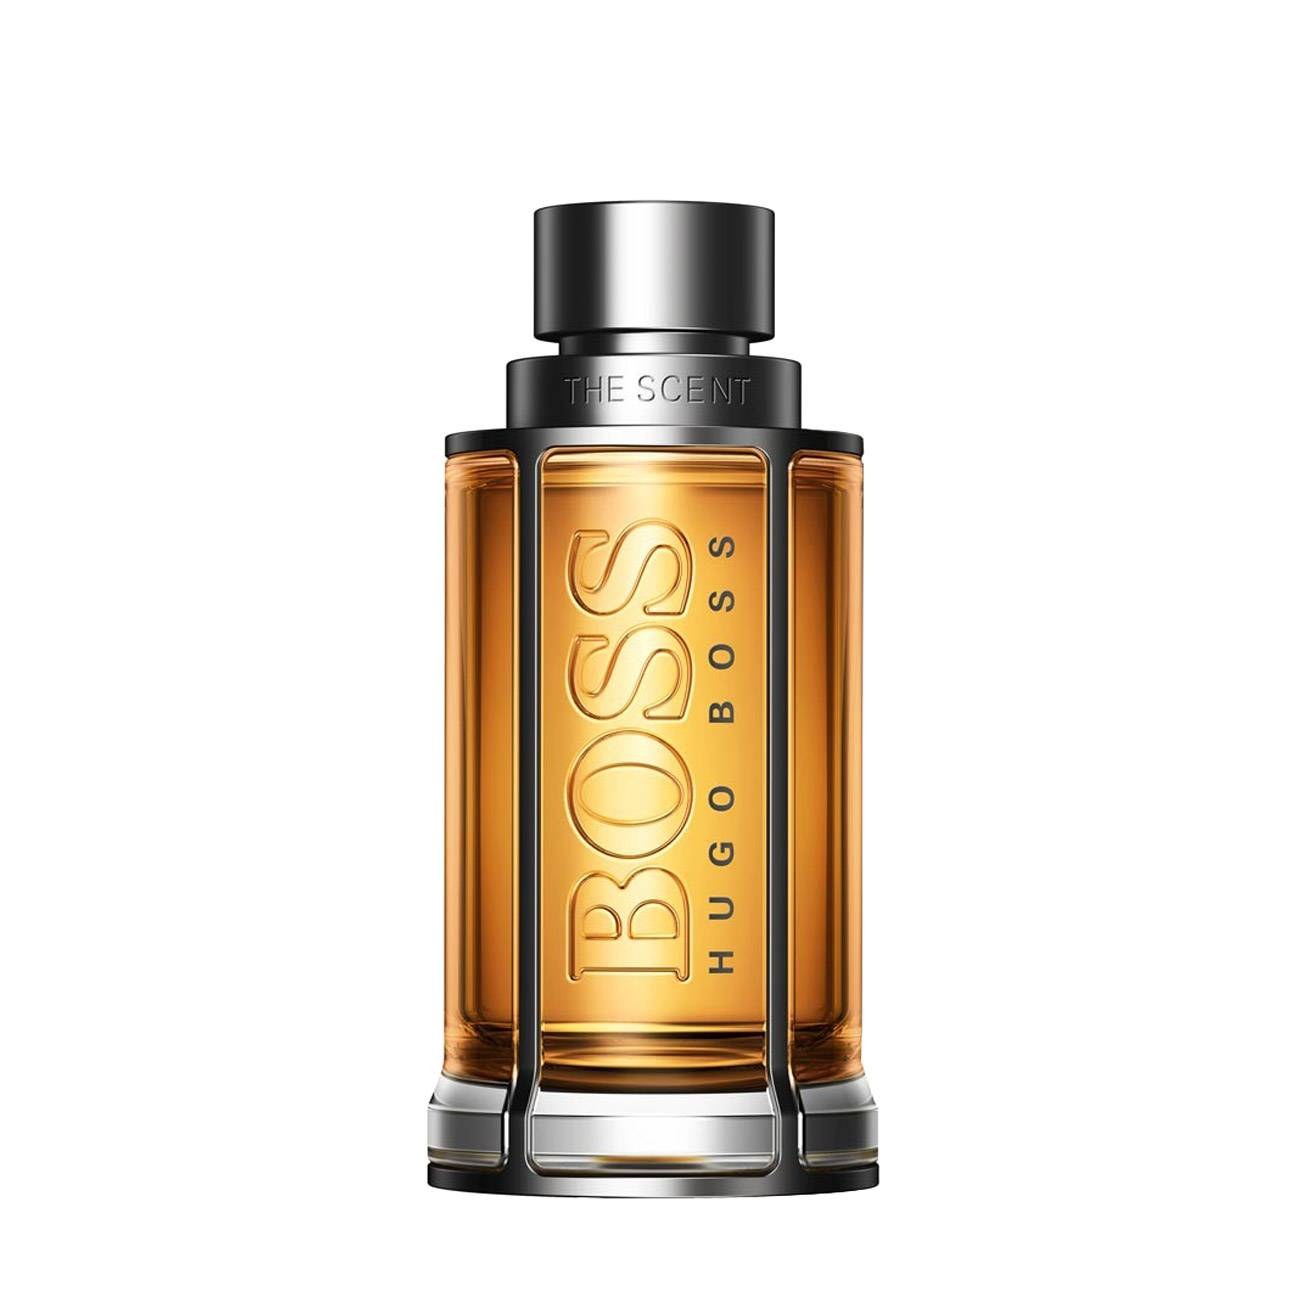 THE SCENT FOR HIM 100 Ml